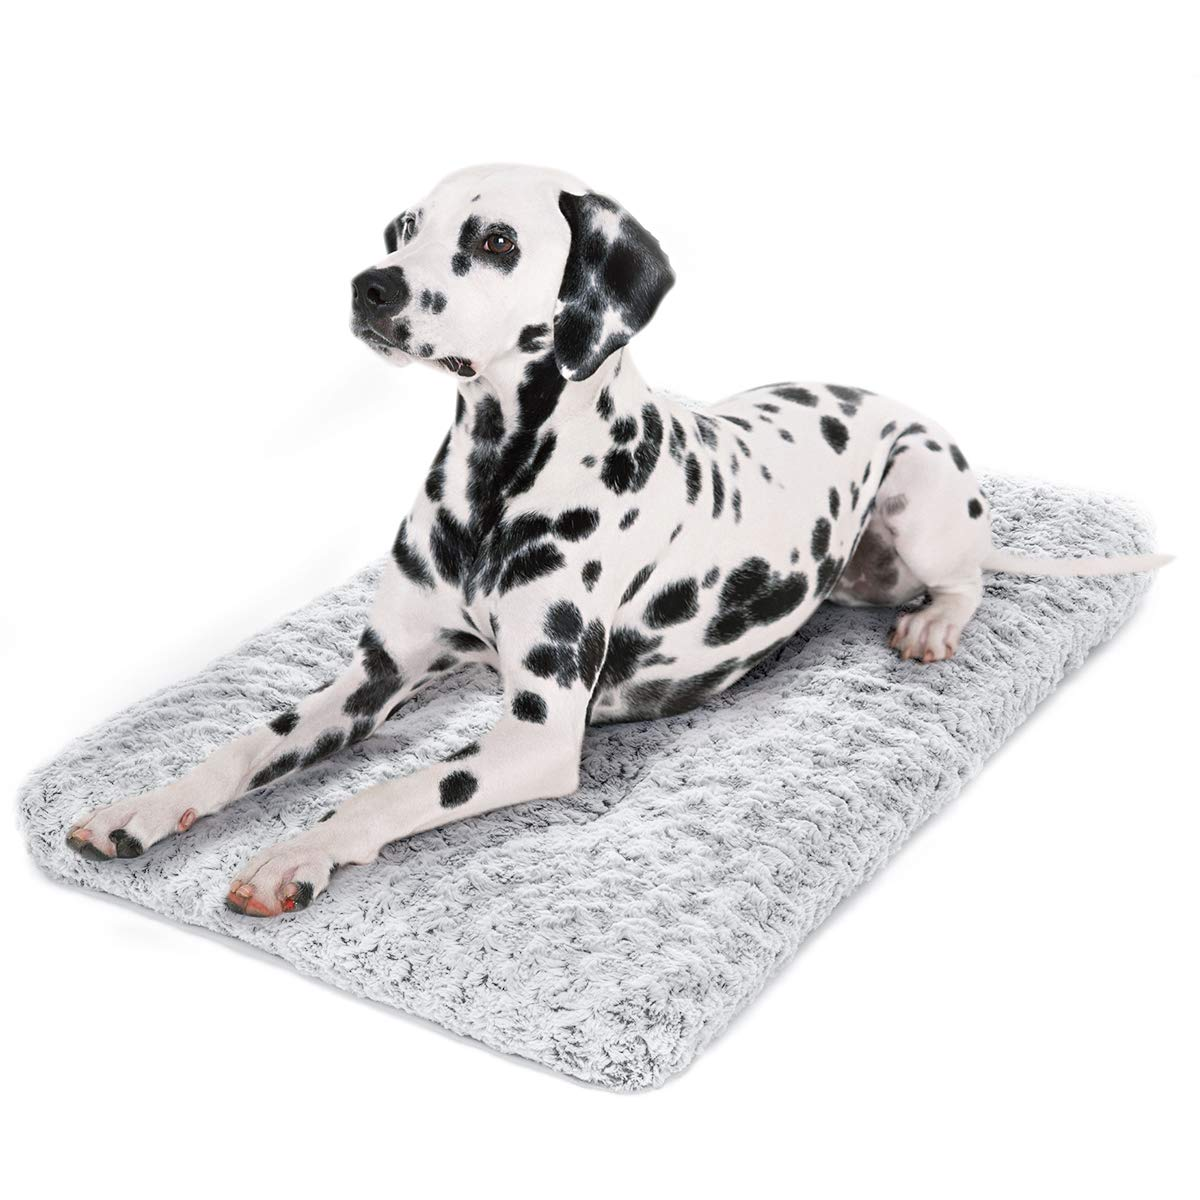 perpets Dog Bed Kennel Pad Washable Anti-Slip Crate Mat for Large Dogs and Cats (36-inch)